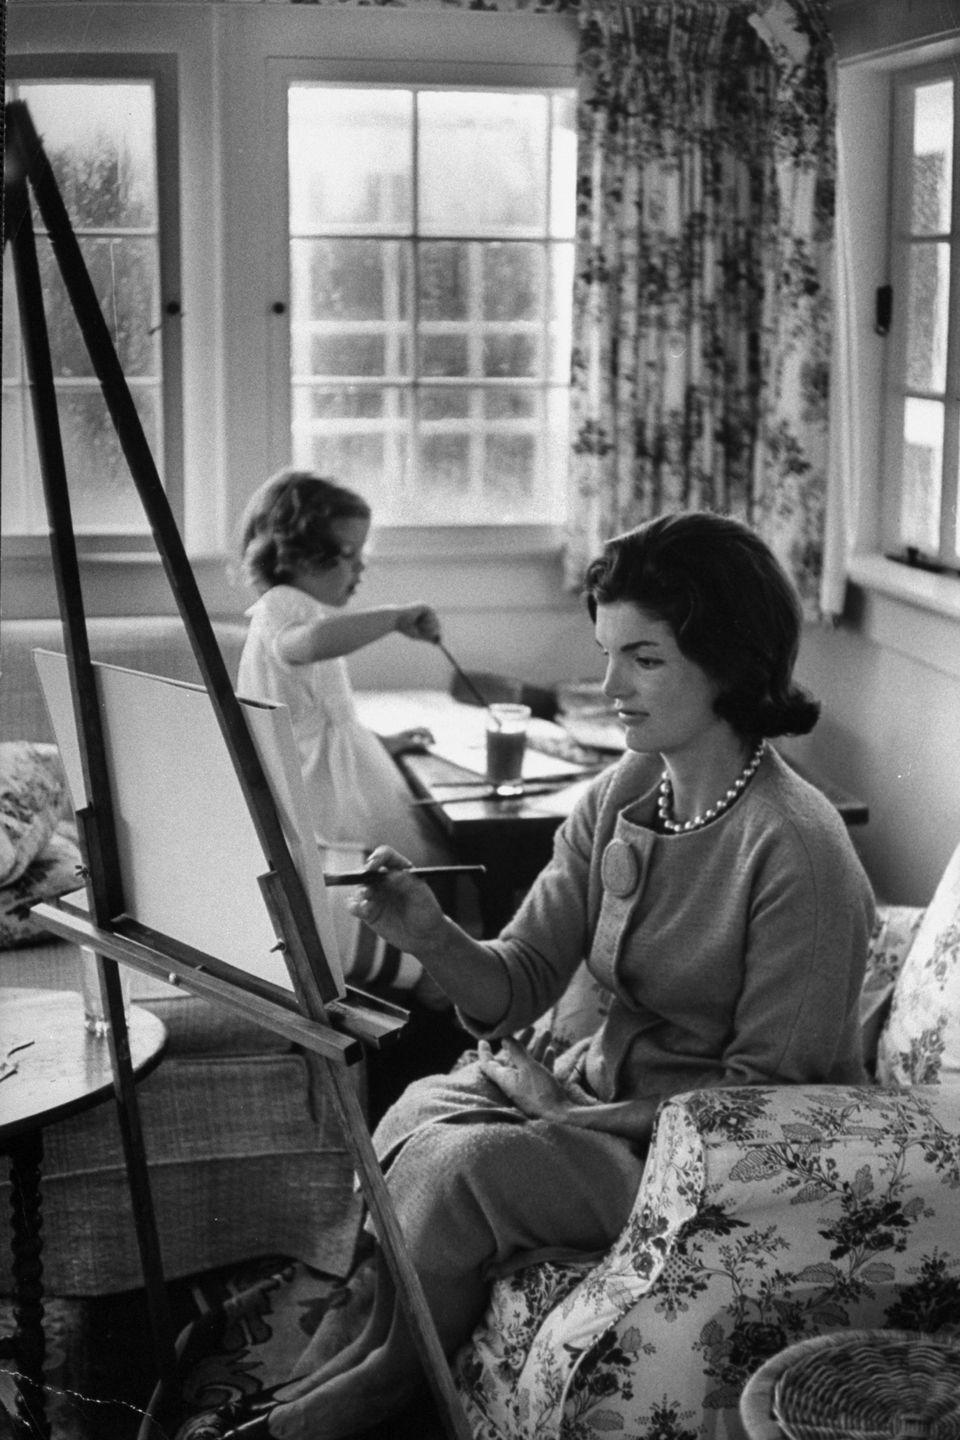 <p>The future First Lady and her daughter, Caroline, enjoy an afternoon of painting from their living room in 1960.</p>